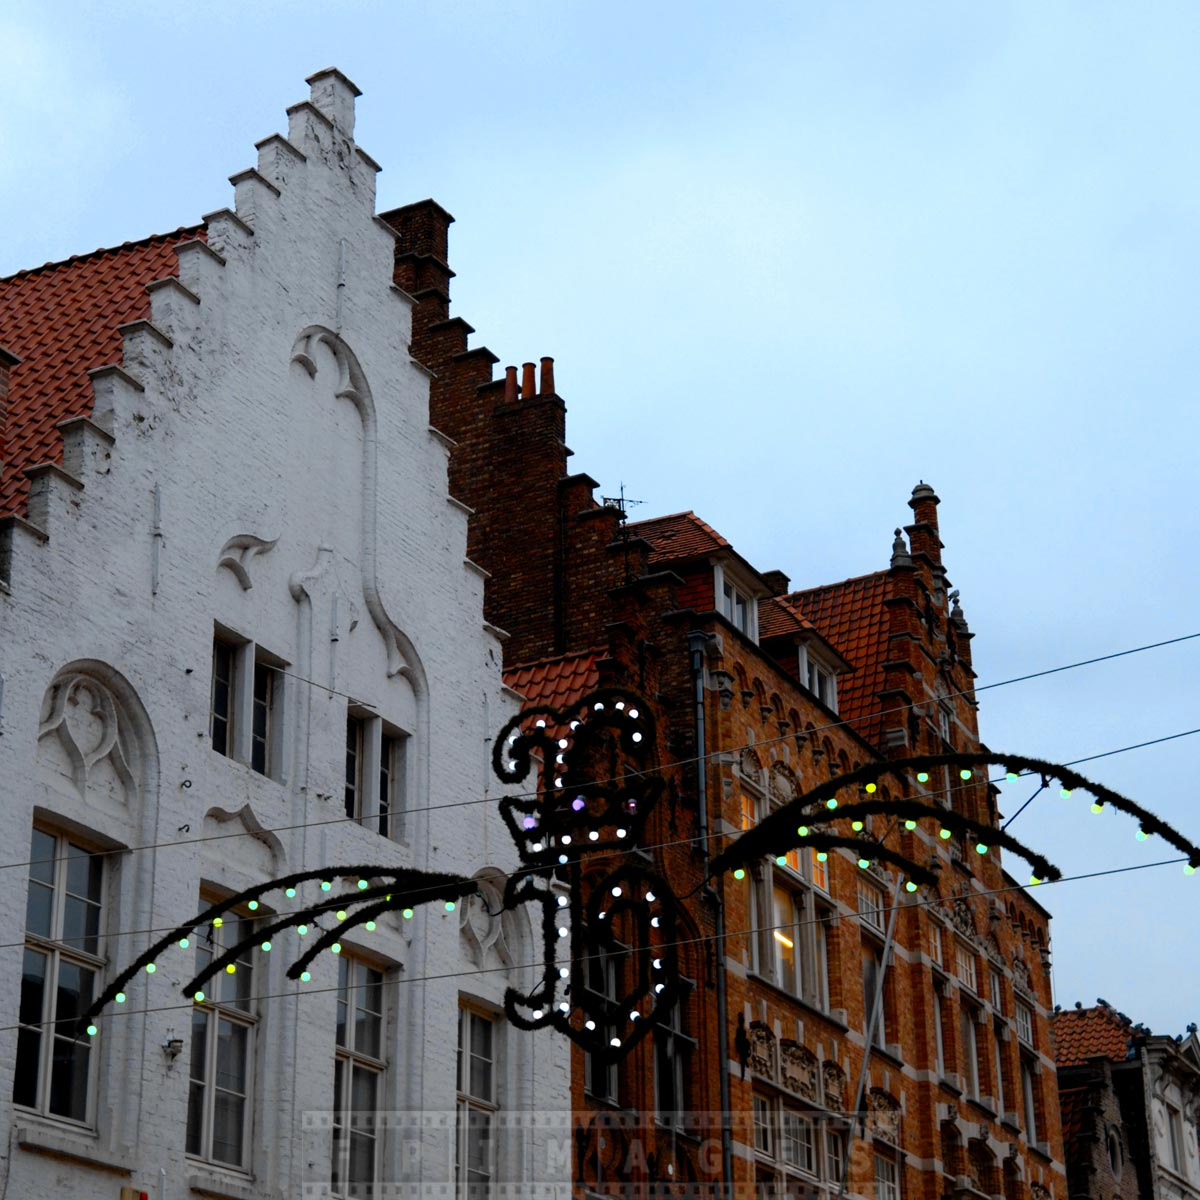 Letter B for Bruges and typical medieval roofs of old European town